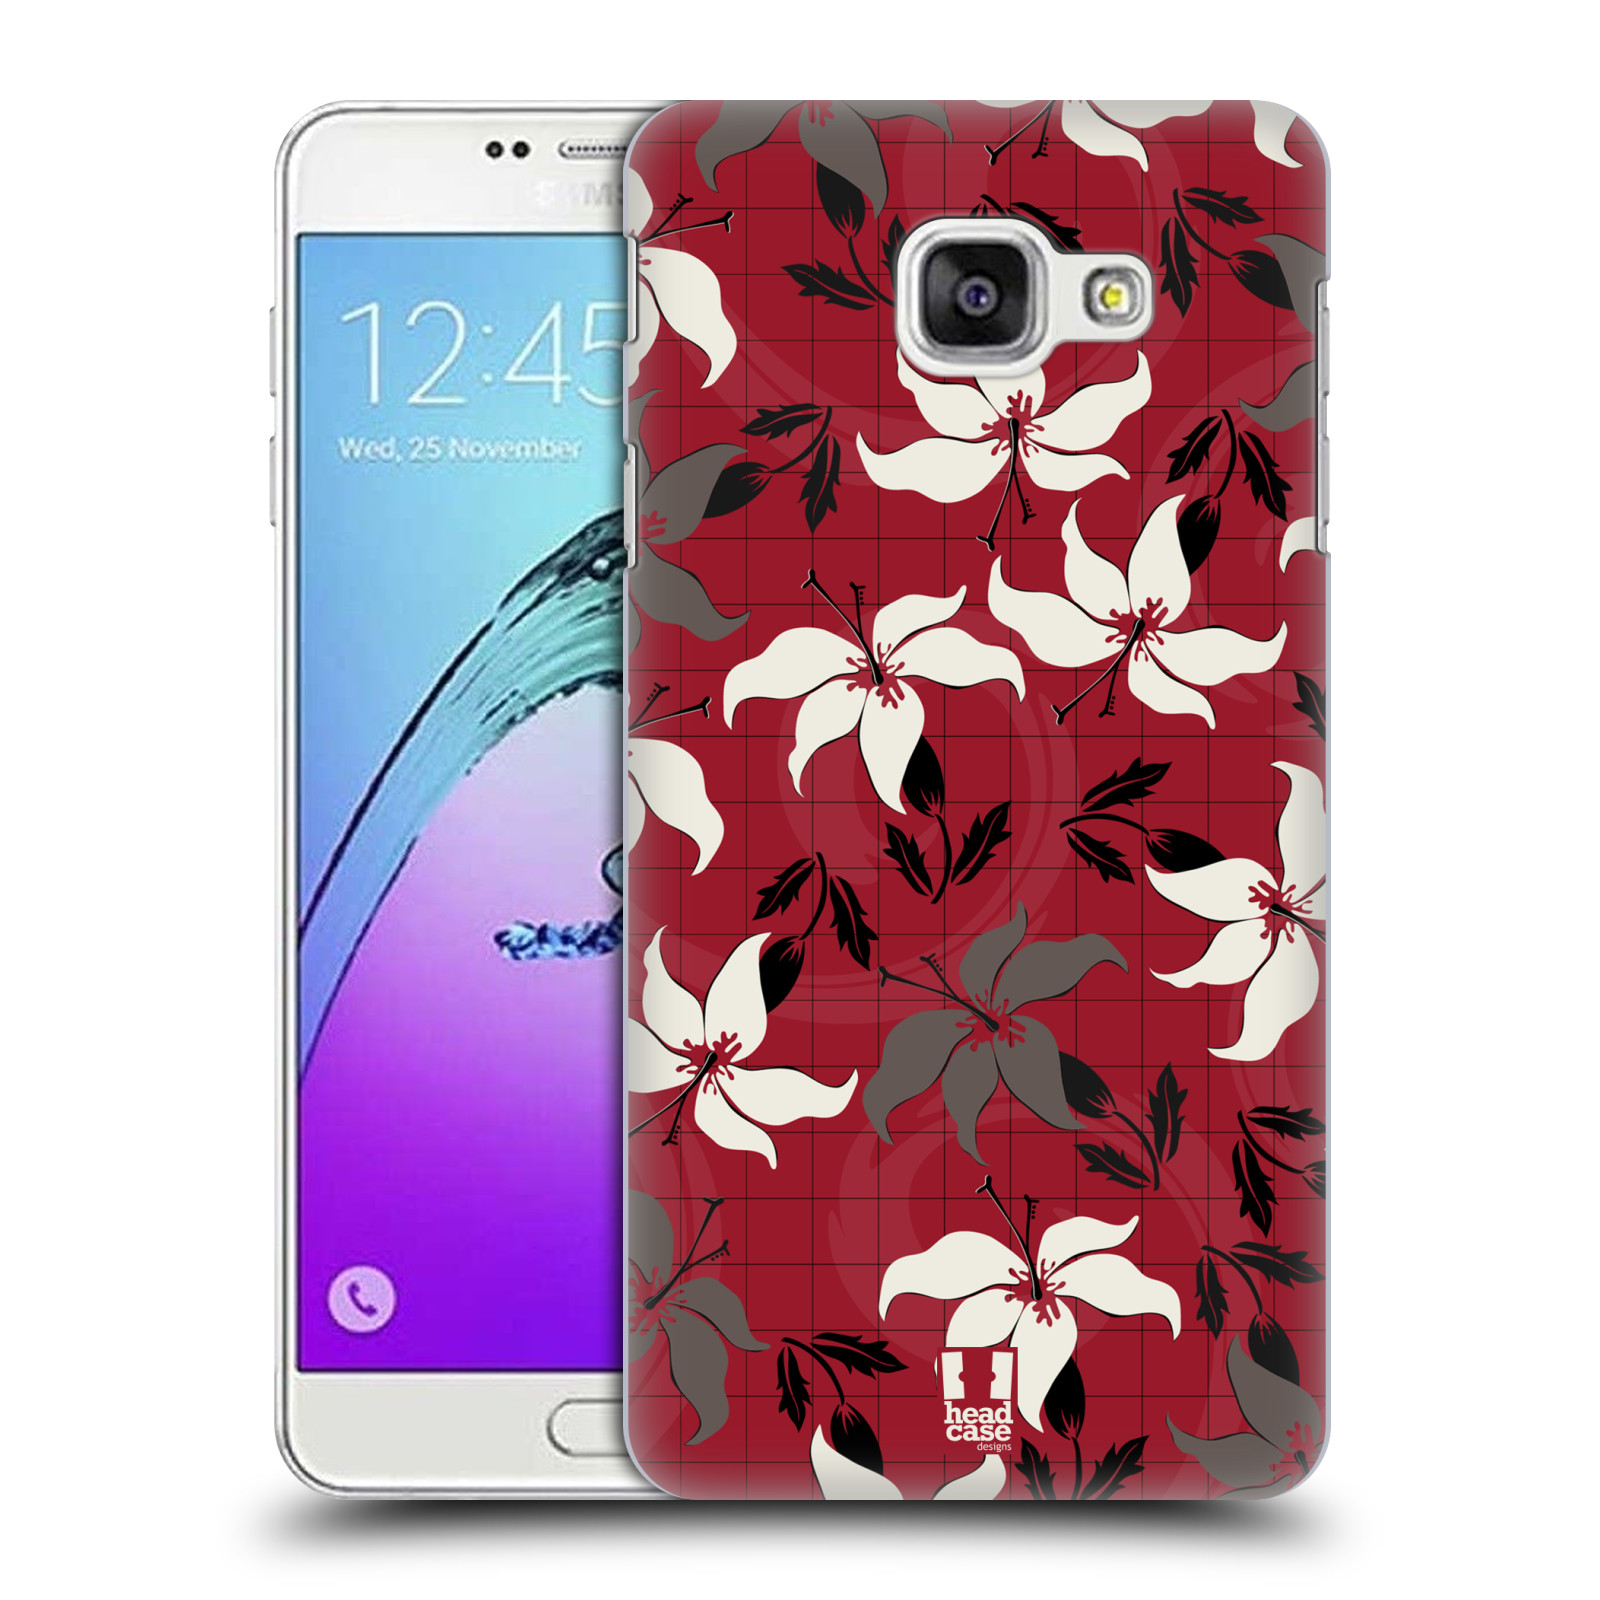 HEAD-CASE-DESIGNS-MOTIF-JAPAWAIIAN-ETUI-COQUE-POUR-SAMSUNG-GALAXY-A7-2017